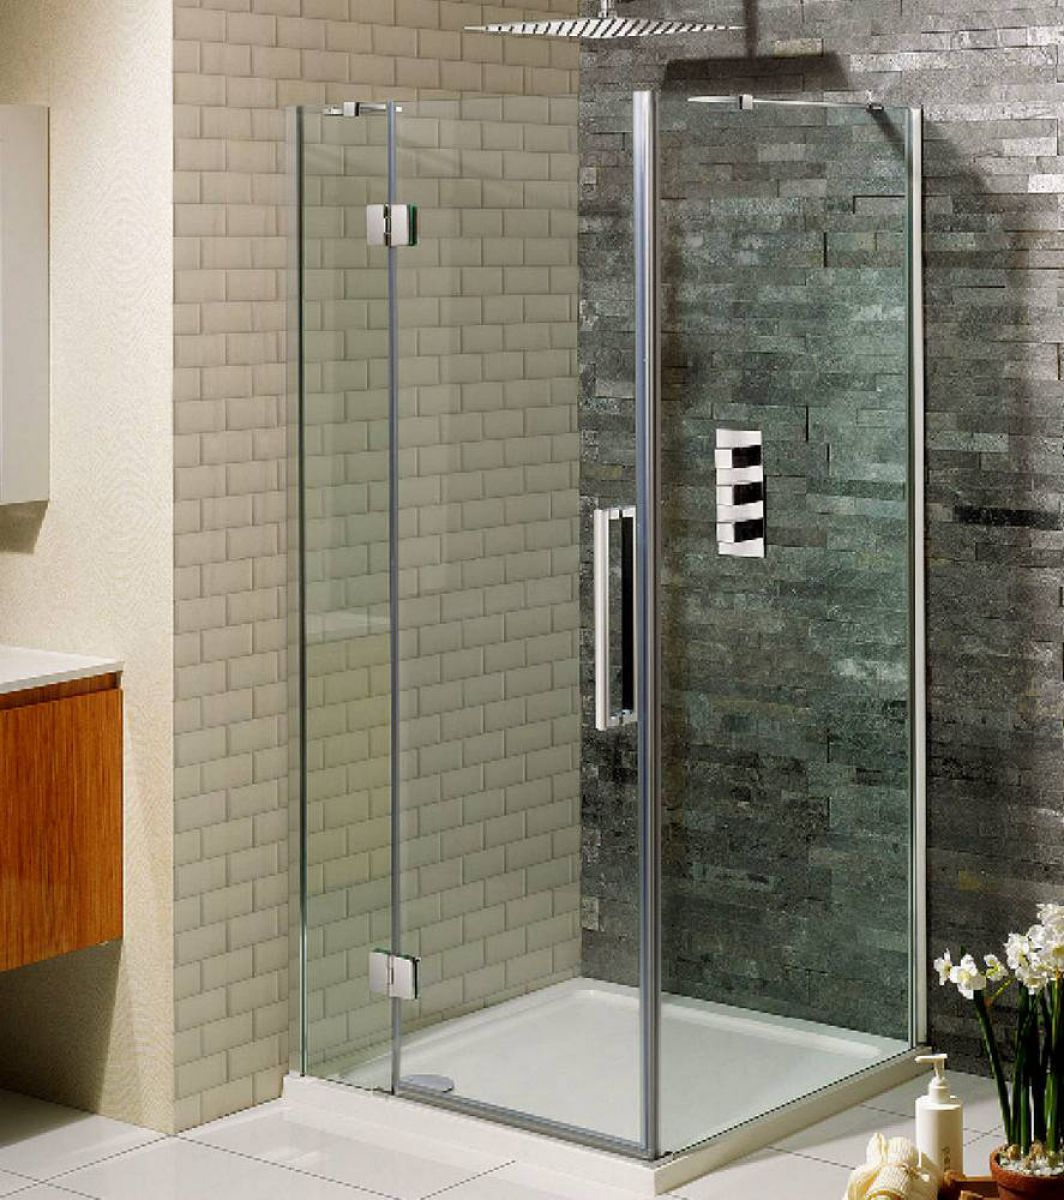 Simpsons ten hinged shower door with inline panel uk for 1200 hinged shower door